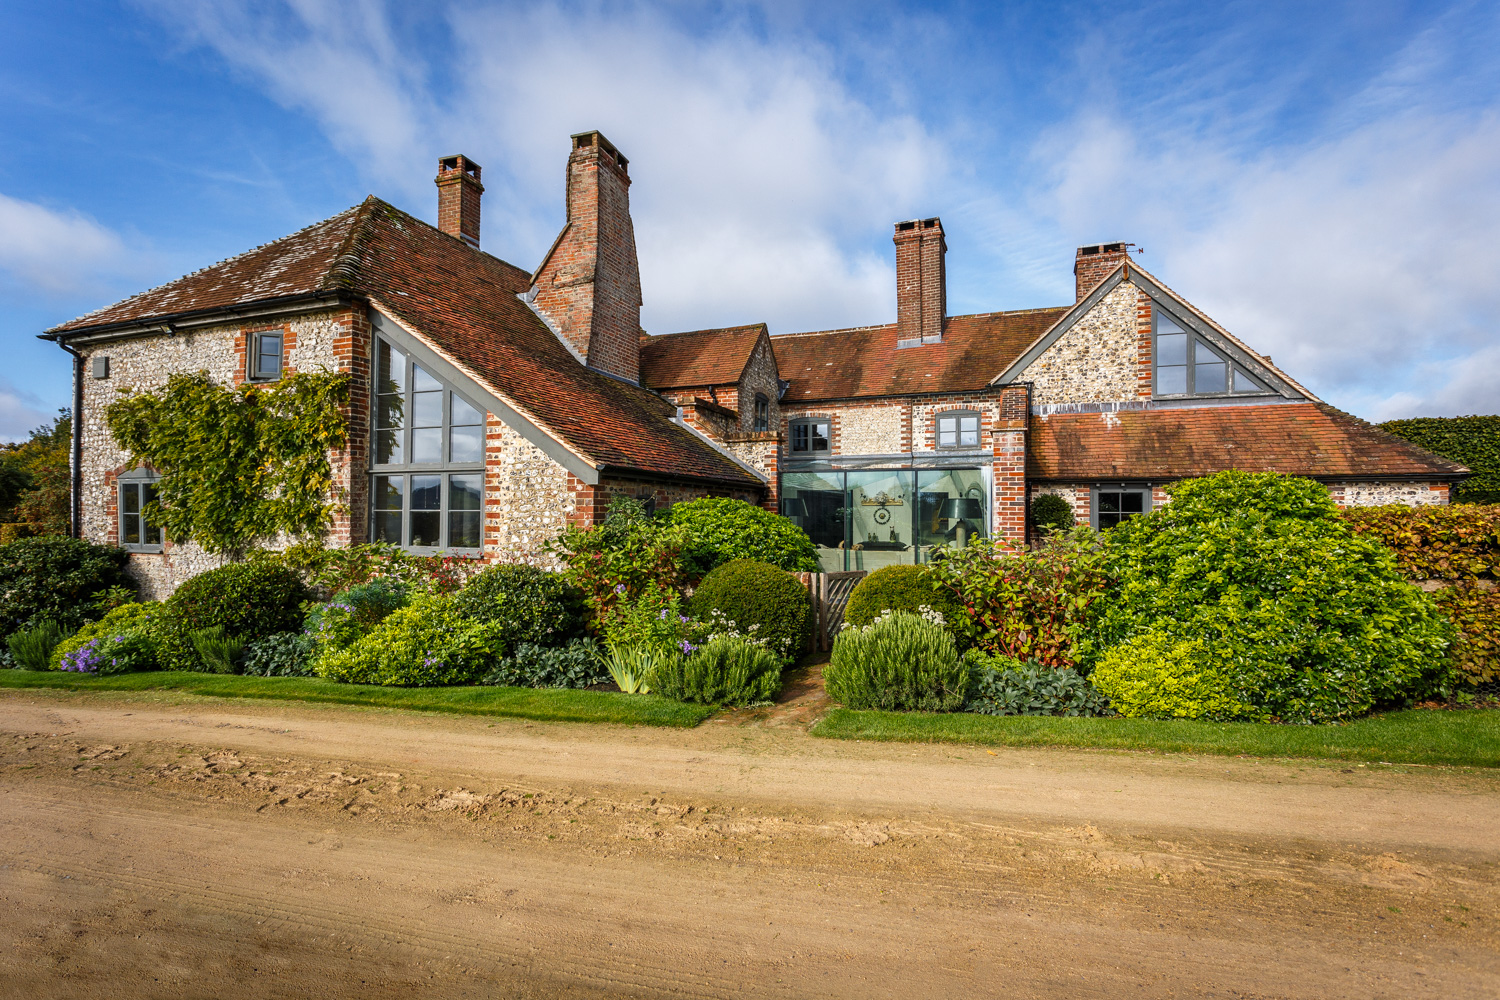 Rick McEvoy Photography - Architectural Photography in Dorset and Hampshire